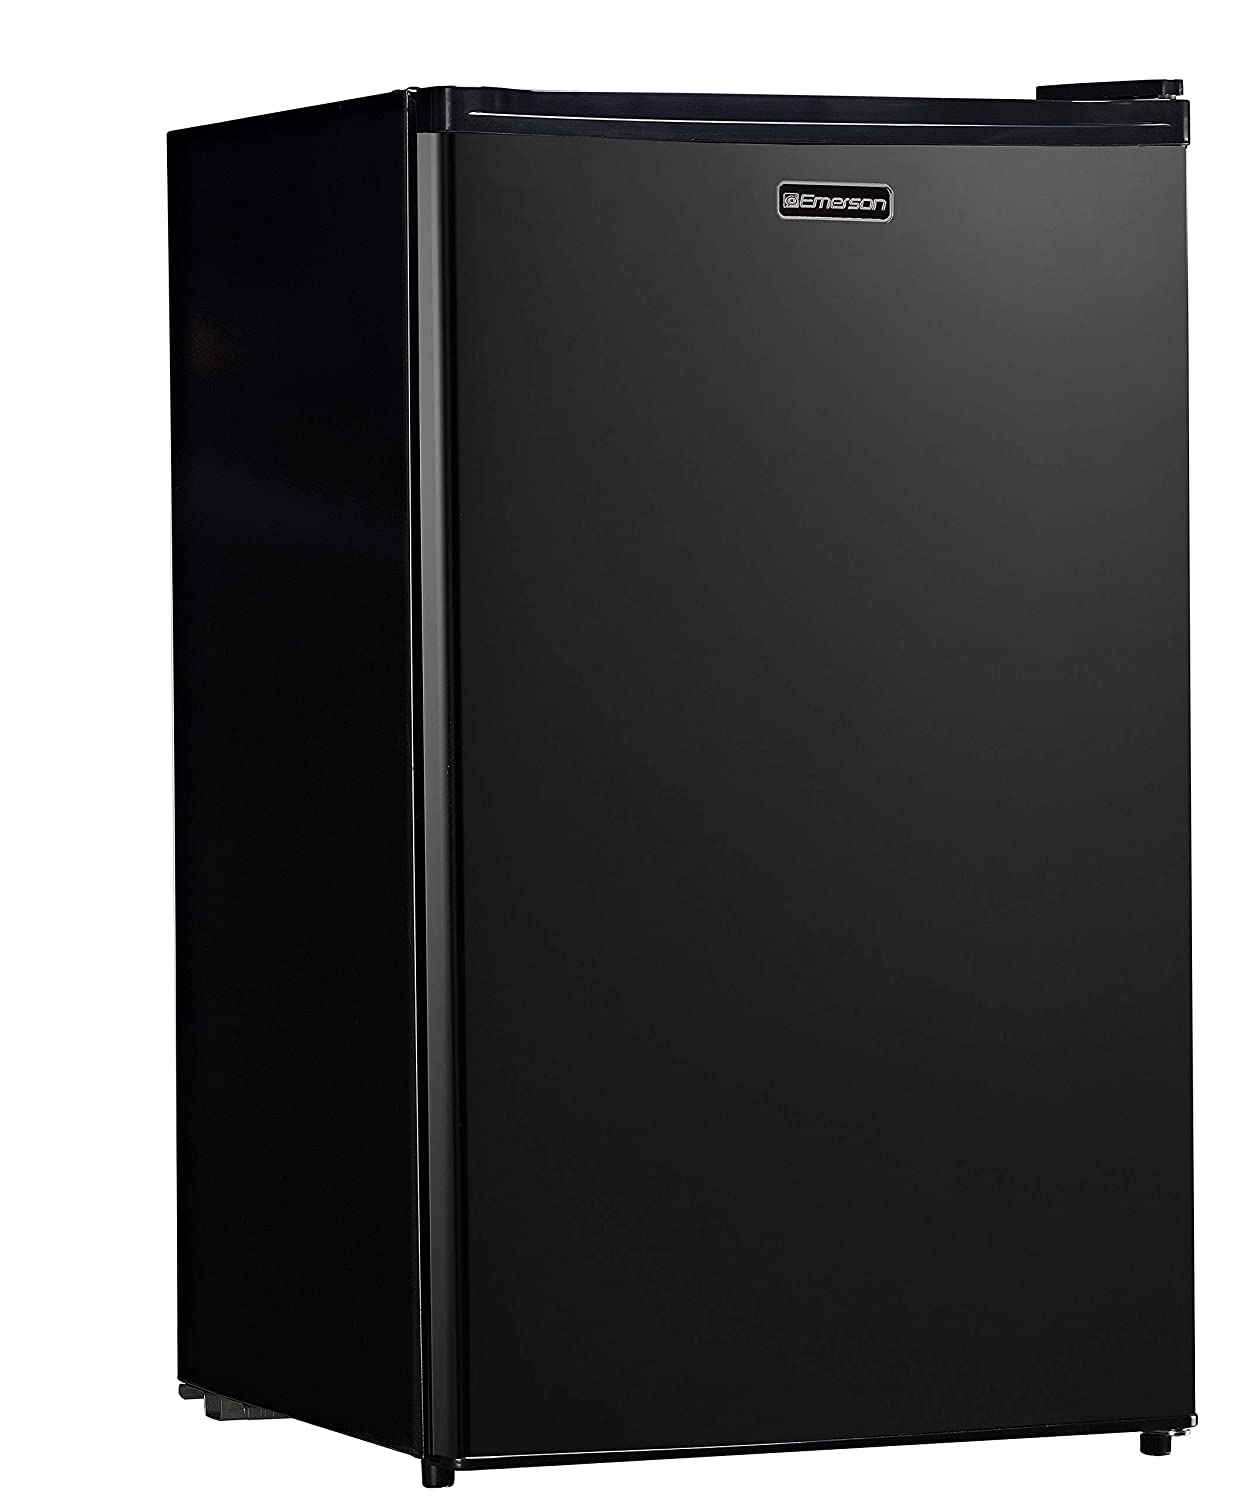 Emerson CR440BE 4.4 Cubic Foot Compact Single Door Refrigerator cu. ft, Black